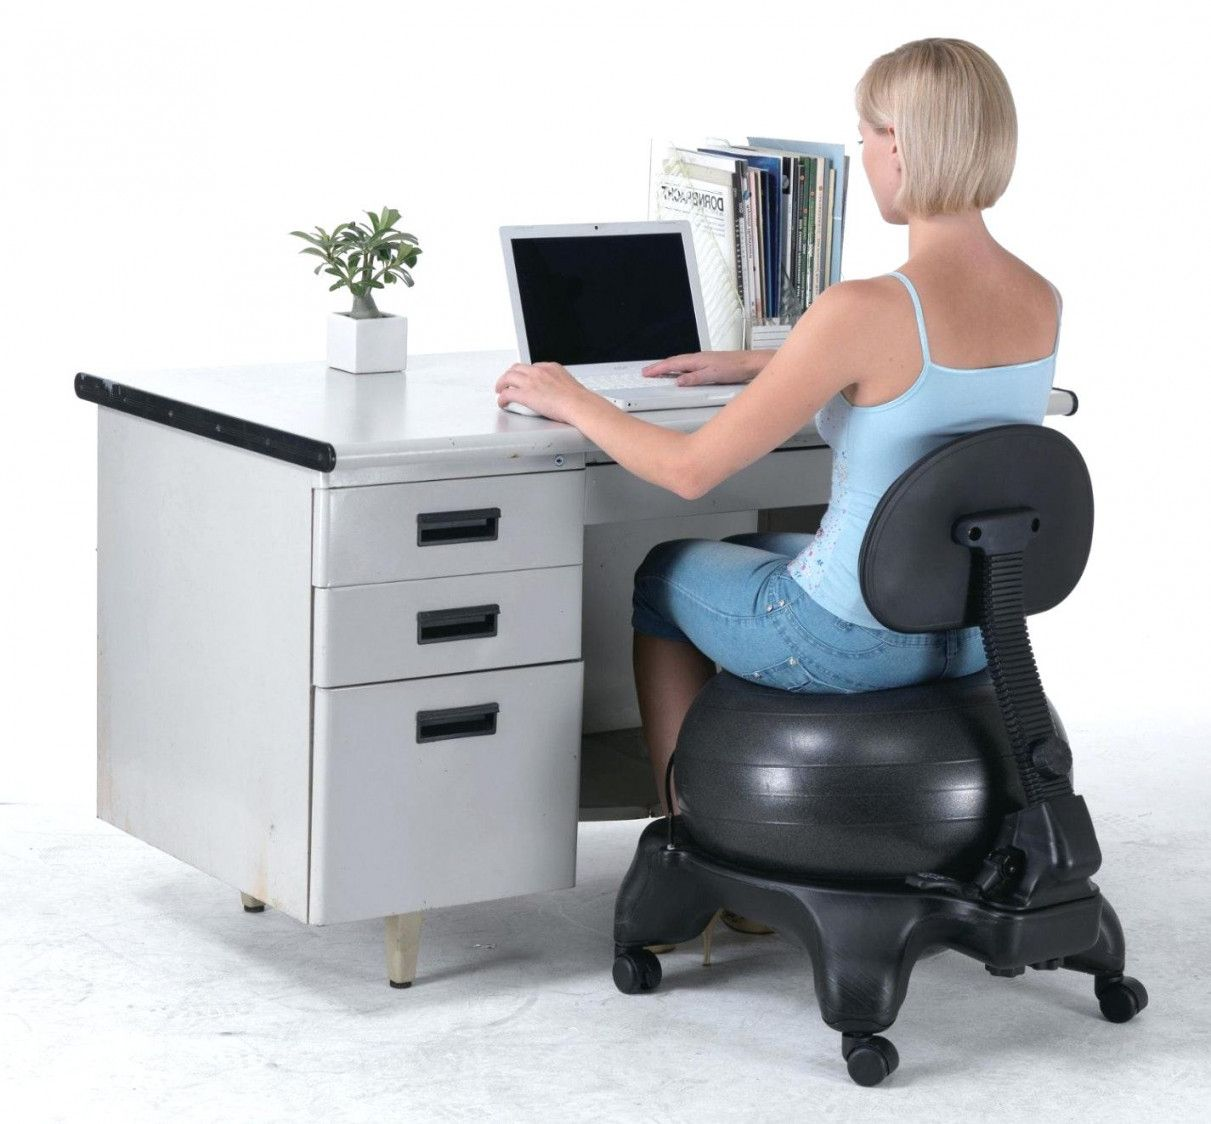 Yoga Ball Office Chair Benefits Modern Home Furniture Check More At Http